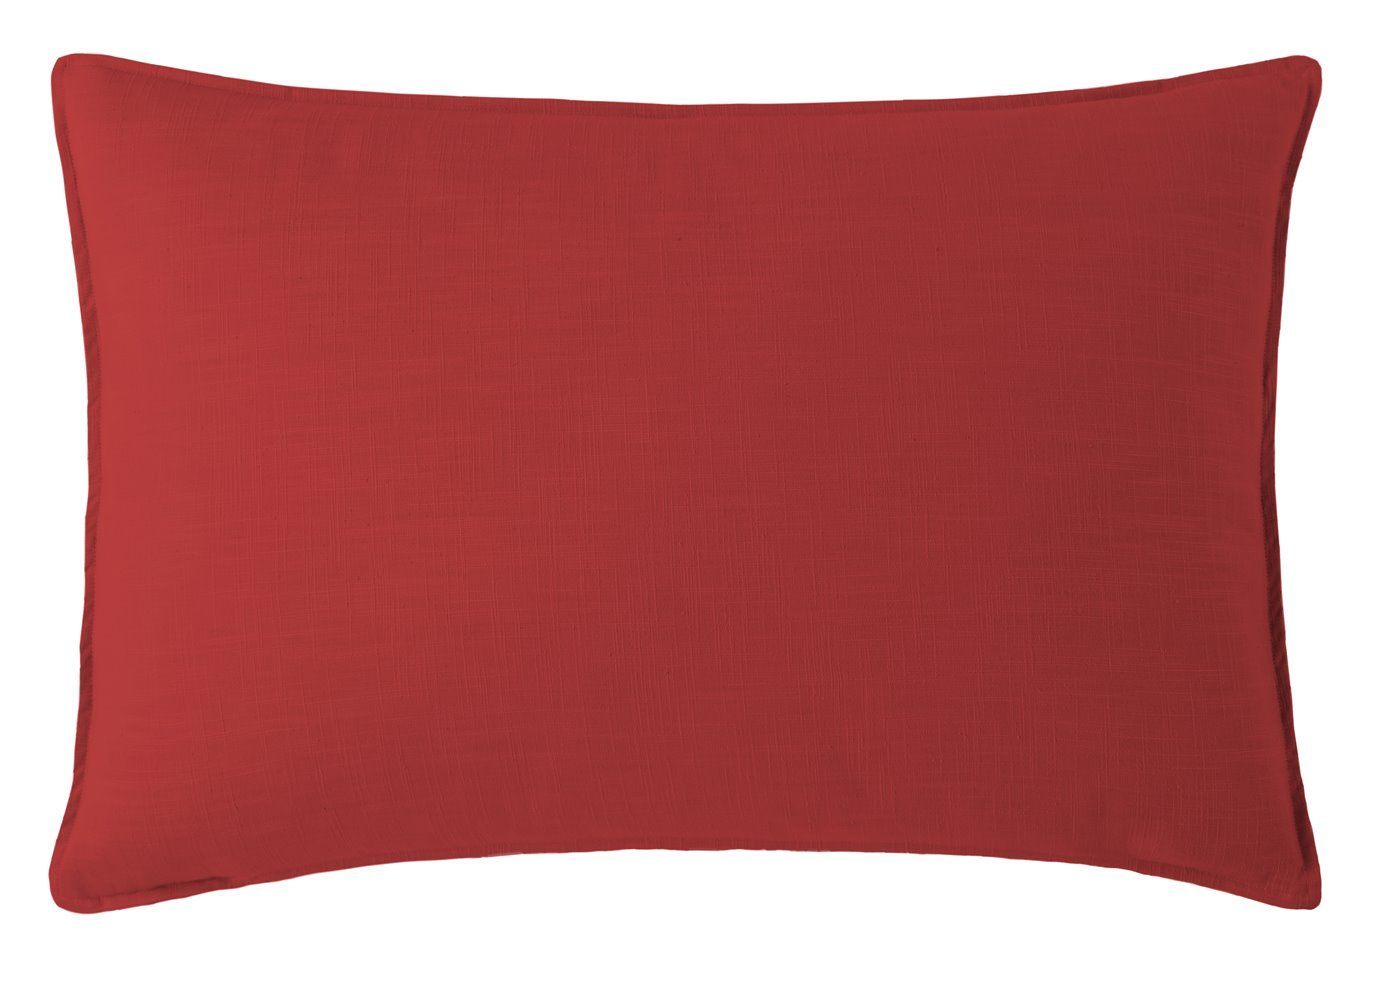 Cambric Red Pillow Sham King